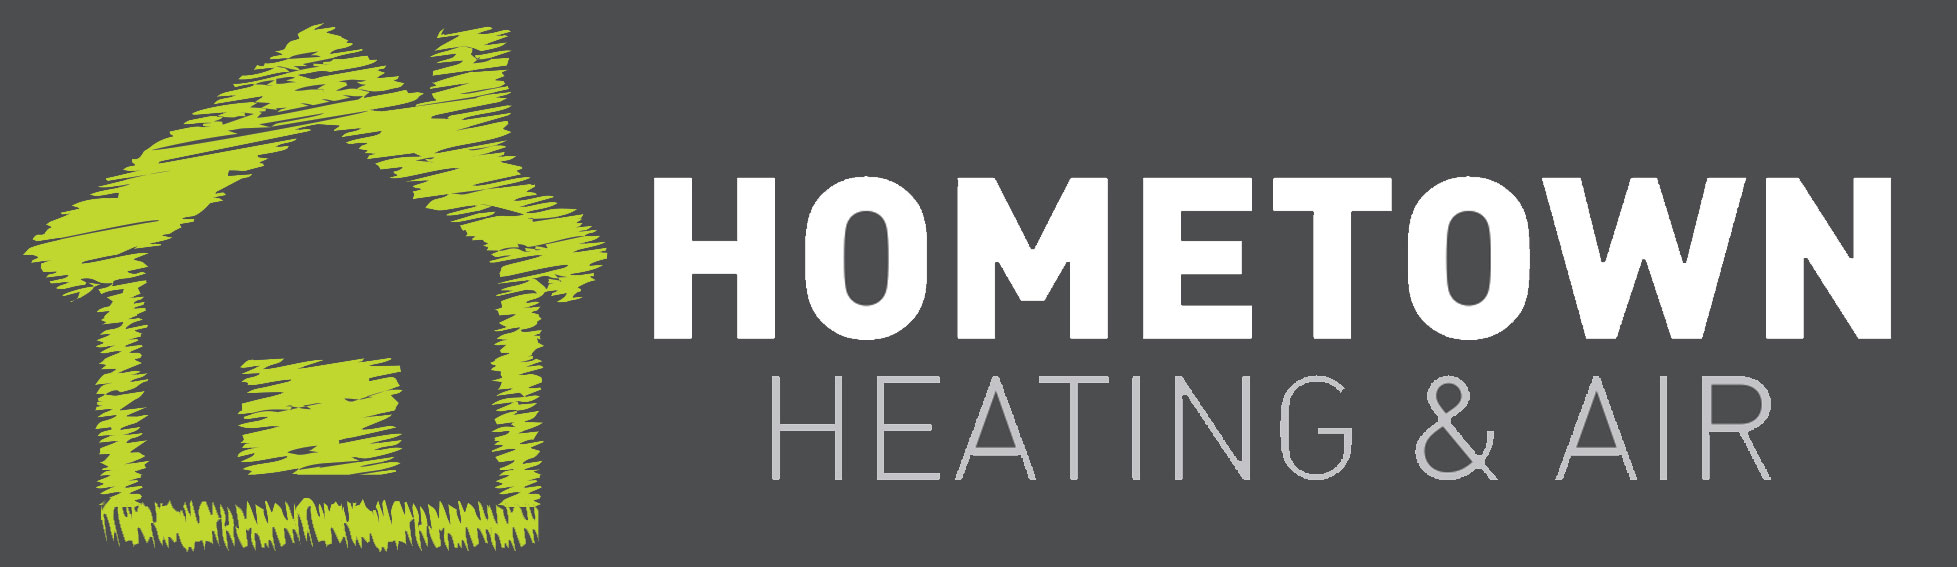 Hometown Heating & Air, Inc. logo